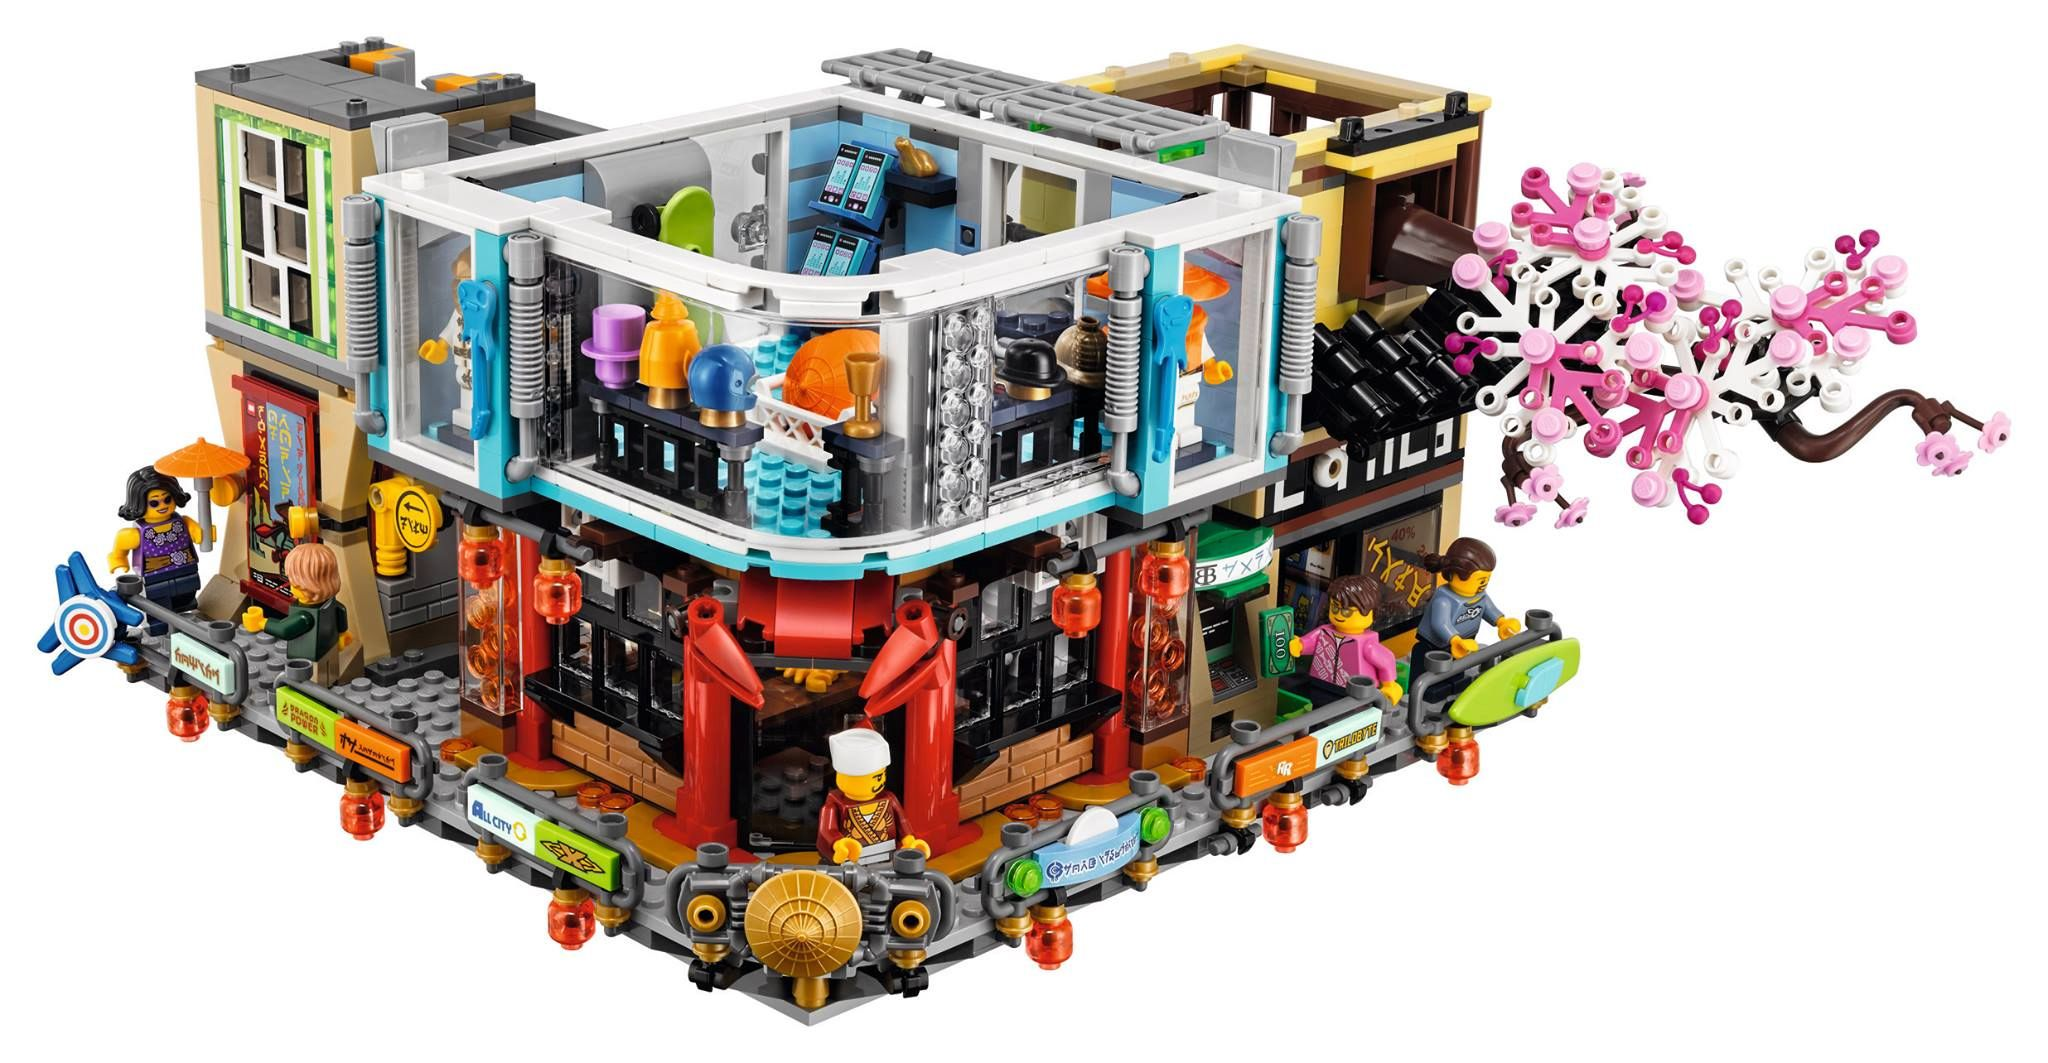 LEGO-Ninjago-Movie-70620-Ninjago-City-02